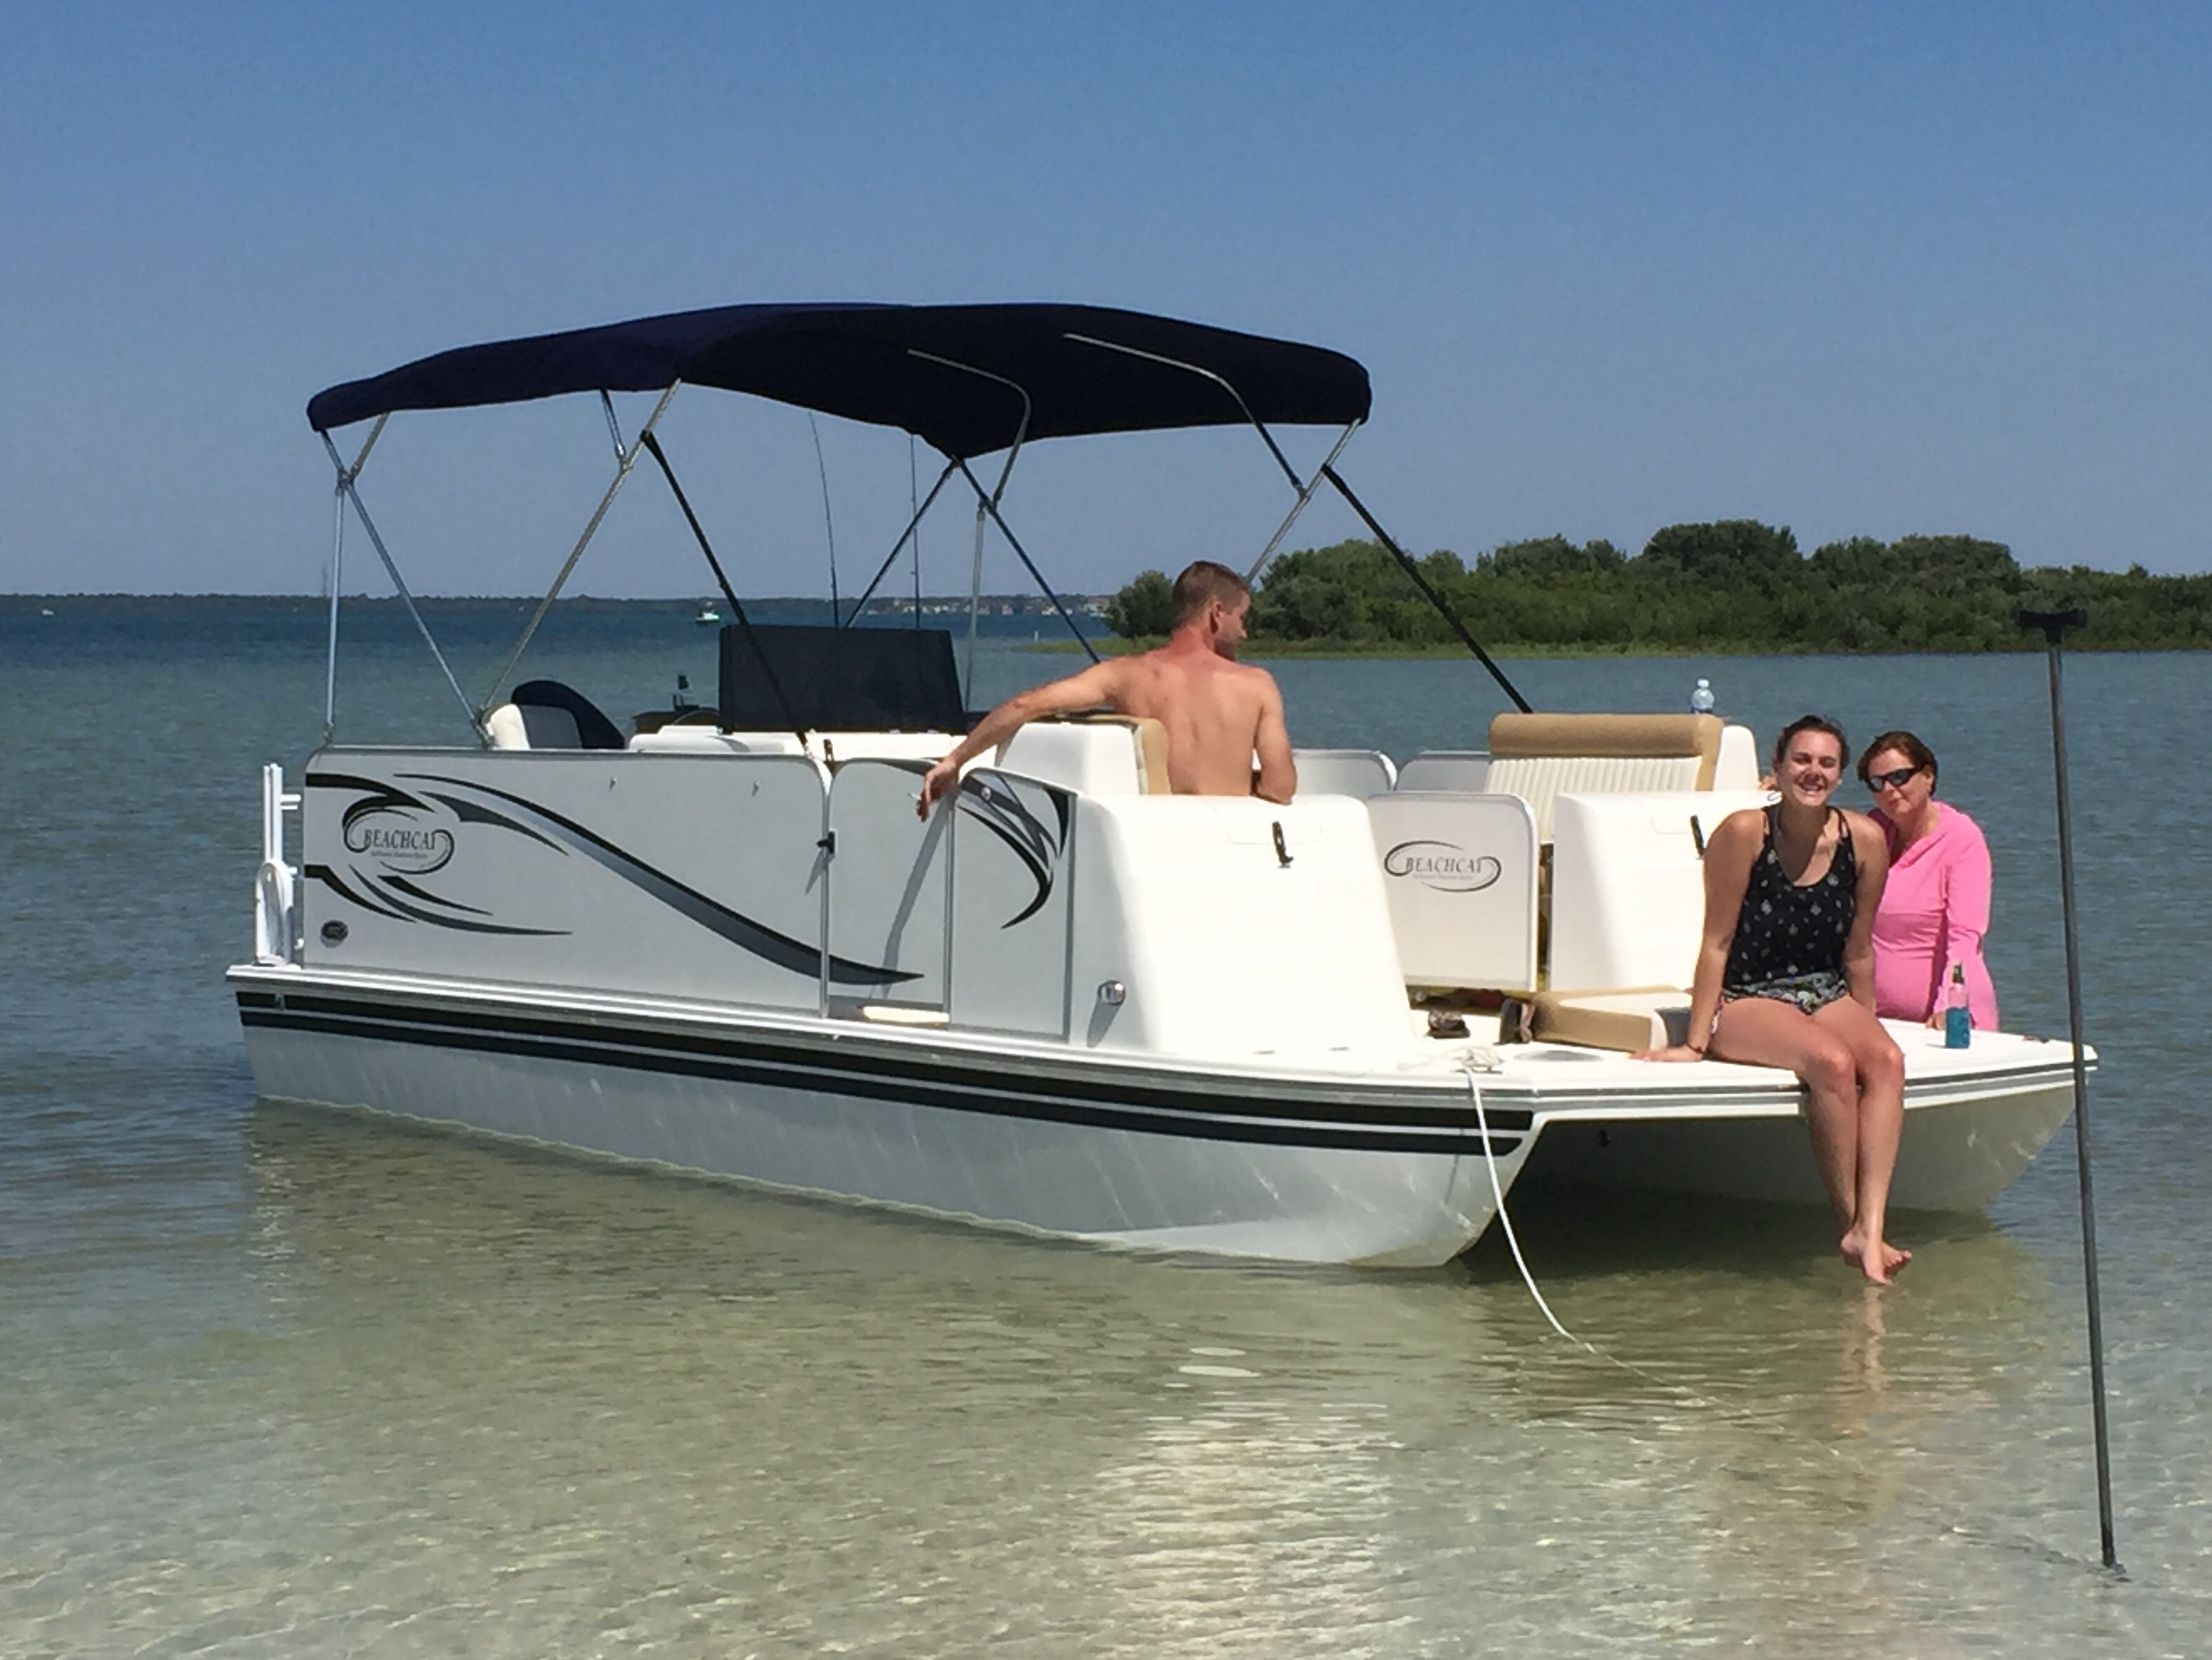 On Saltwater Rather You Pontoon Be Boats The Wouldn't – Water Beachcat